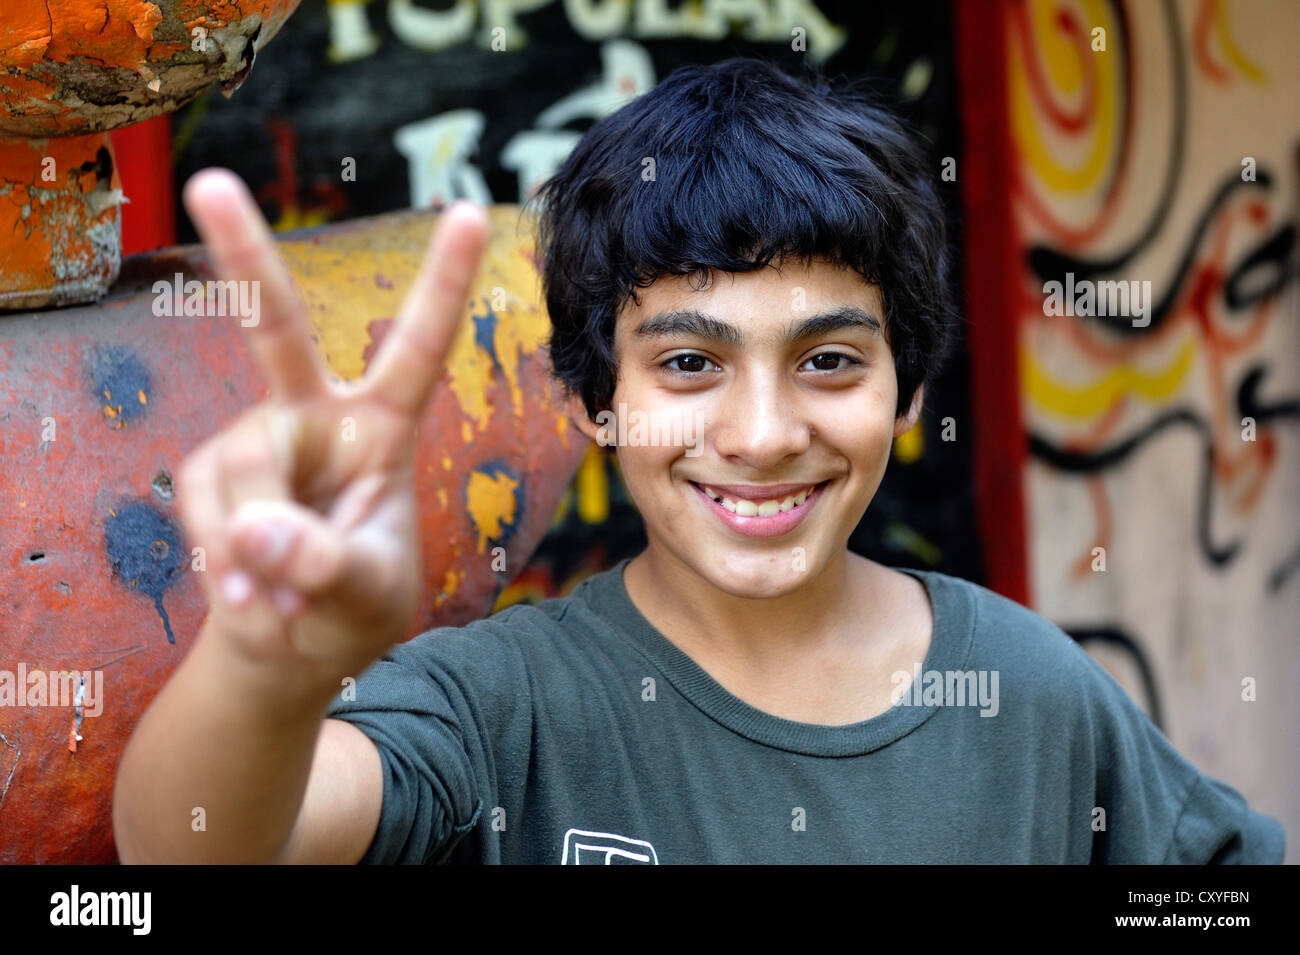 Young person making the 'victory' sign, Buenos Aires, Argentina, South America - Stock Image